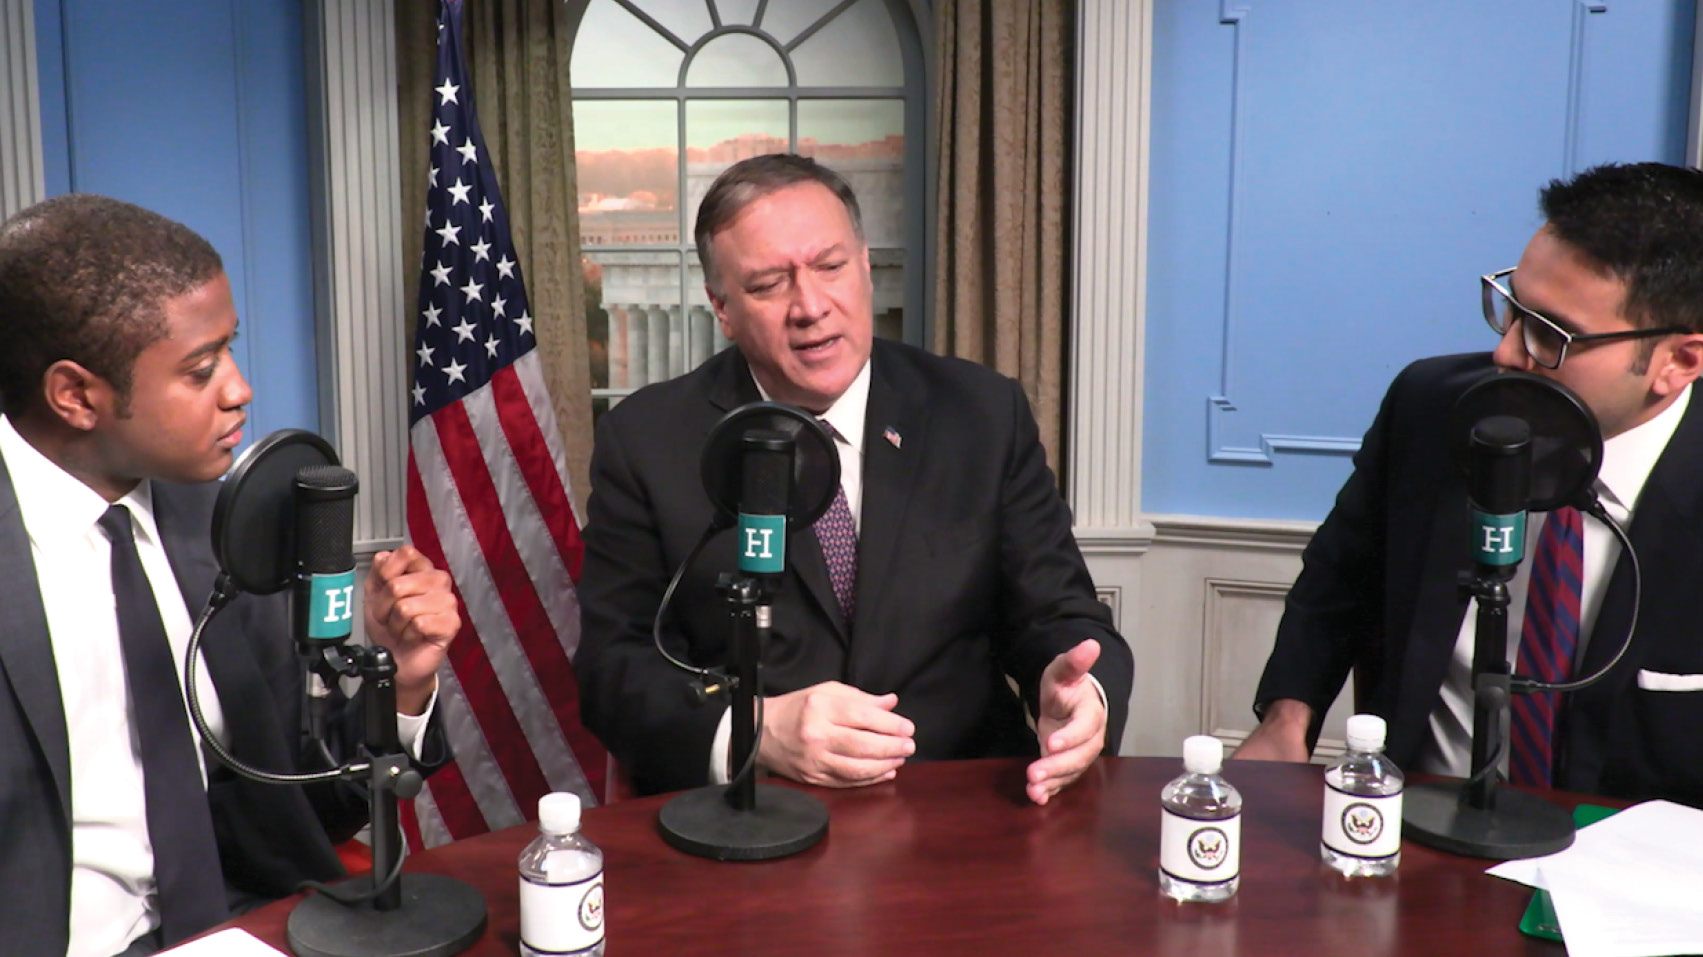 Marshall and Saagar travel to the State Department to interview Secretary of State Mike Pompeo about his approach to foreign policy and how the sports and entertainment industry should navigate the Chinese market.